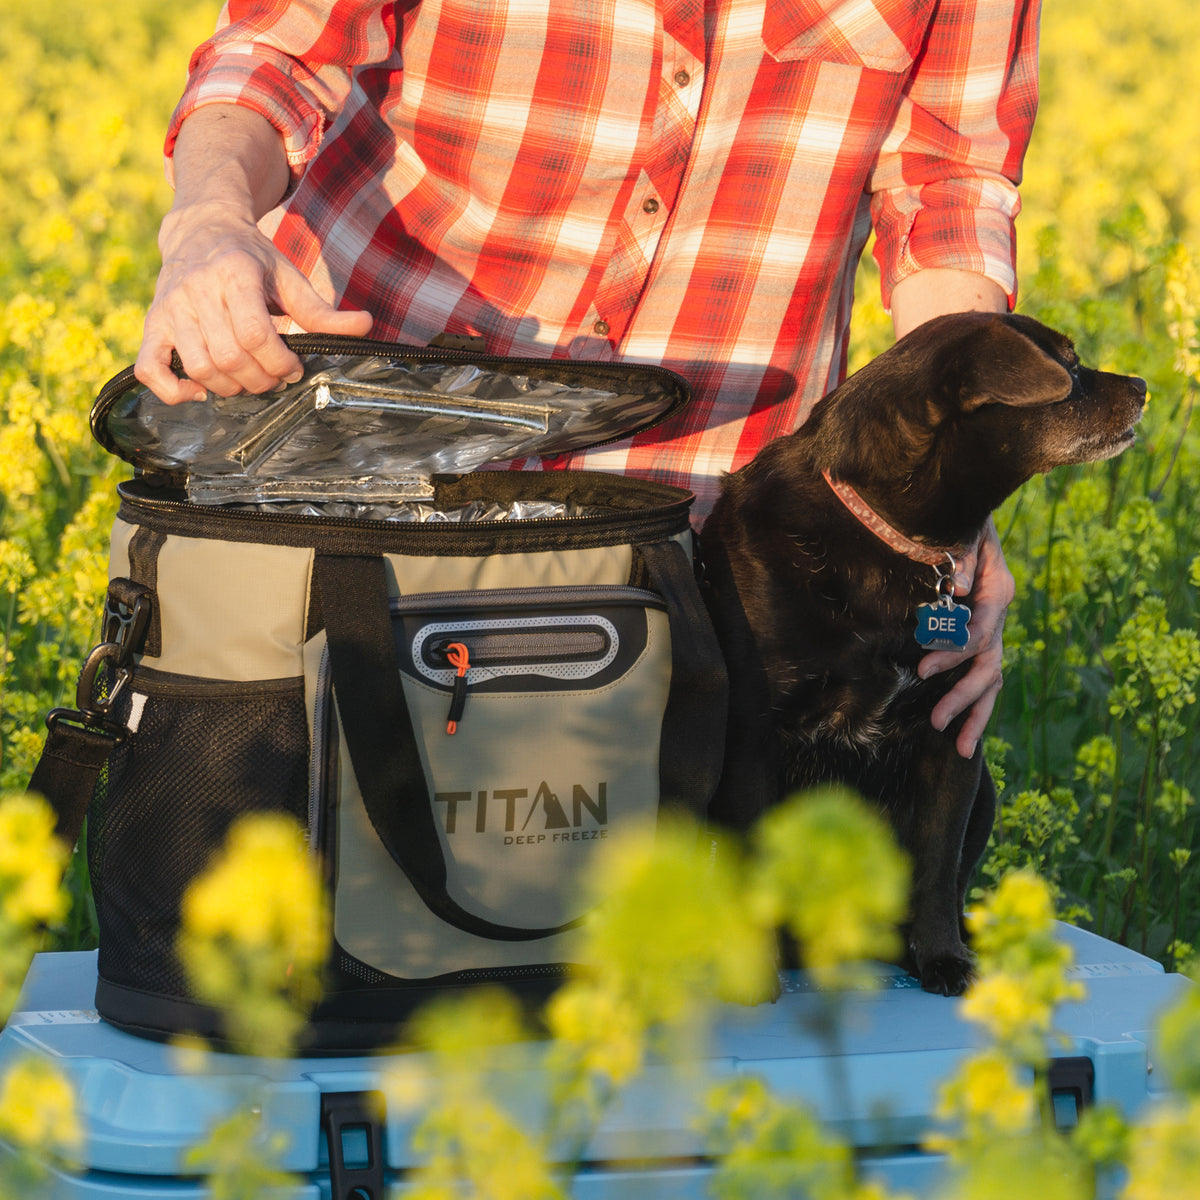 Titan Deep Freeze® 24 Can Bucket Tote - Tan - Lifestyle, dog with the cooler in a flower field